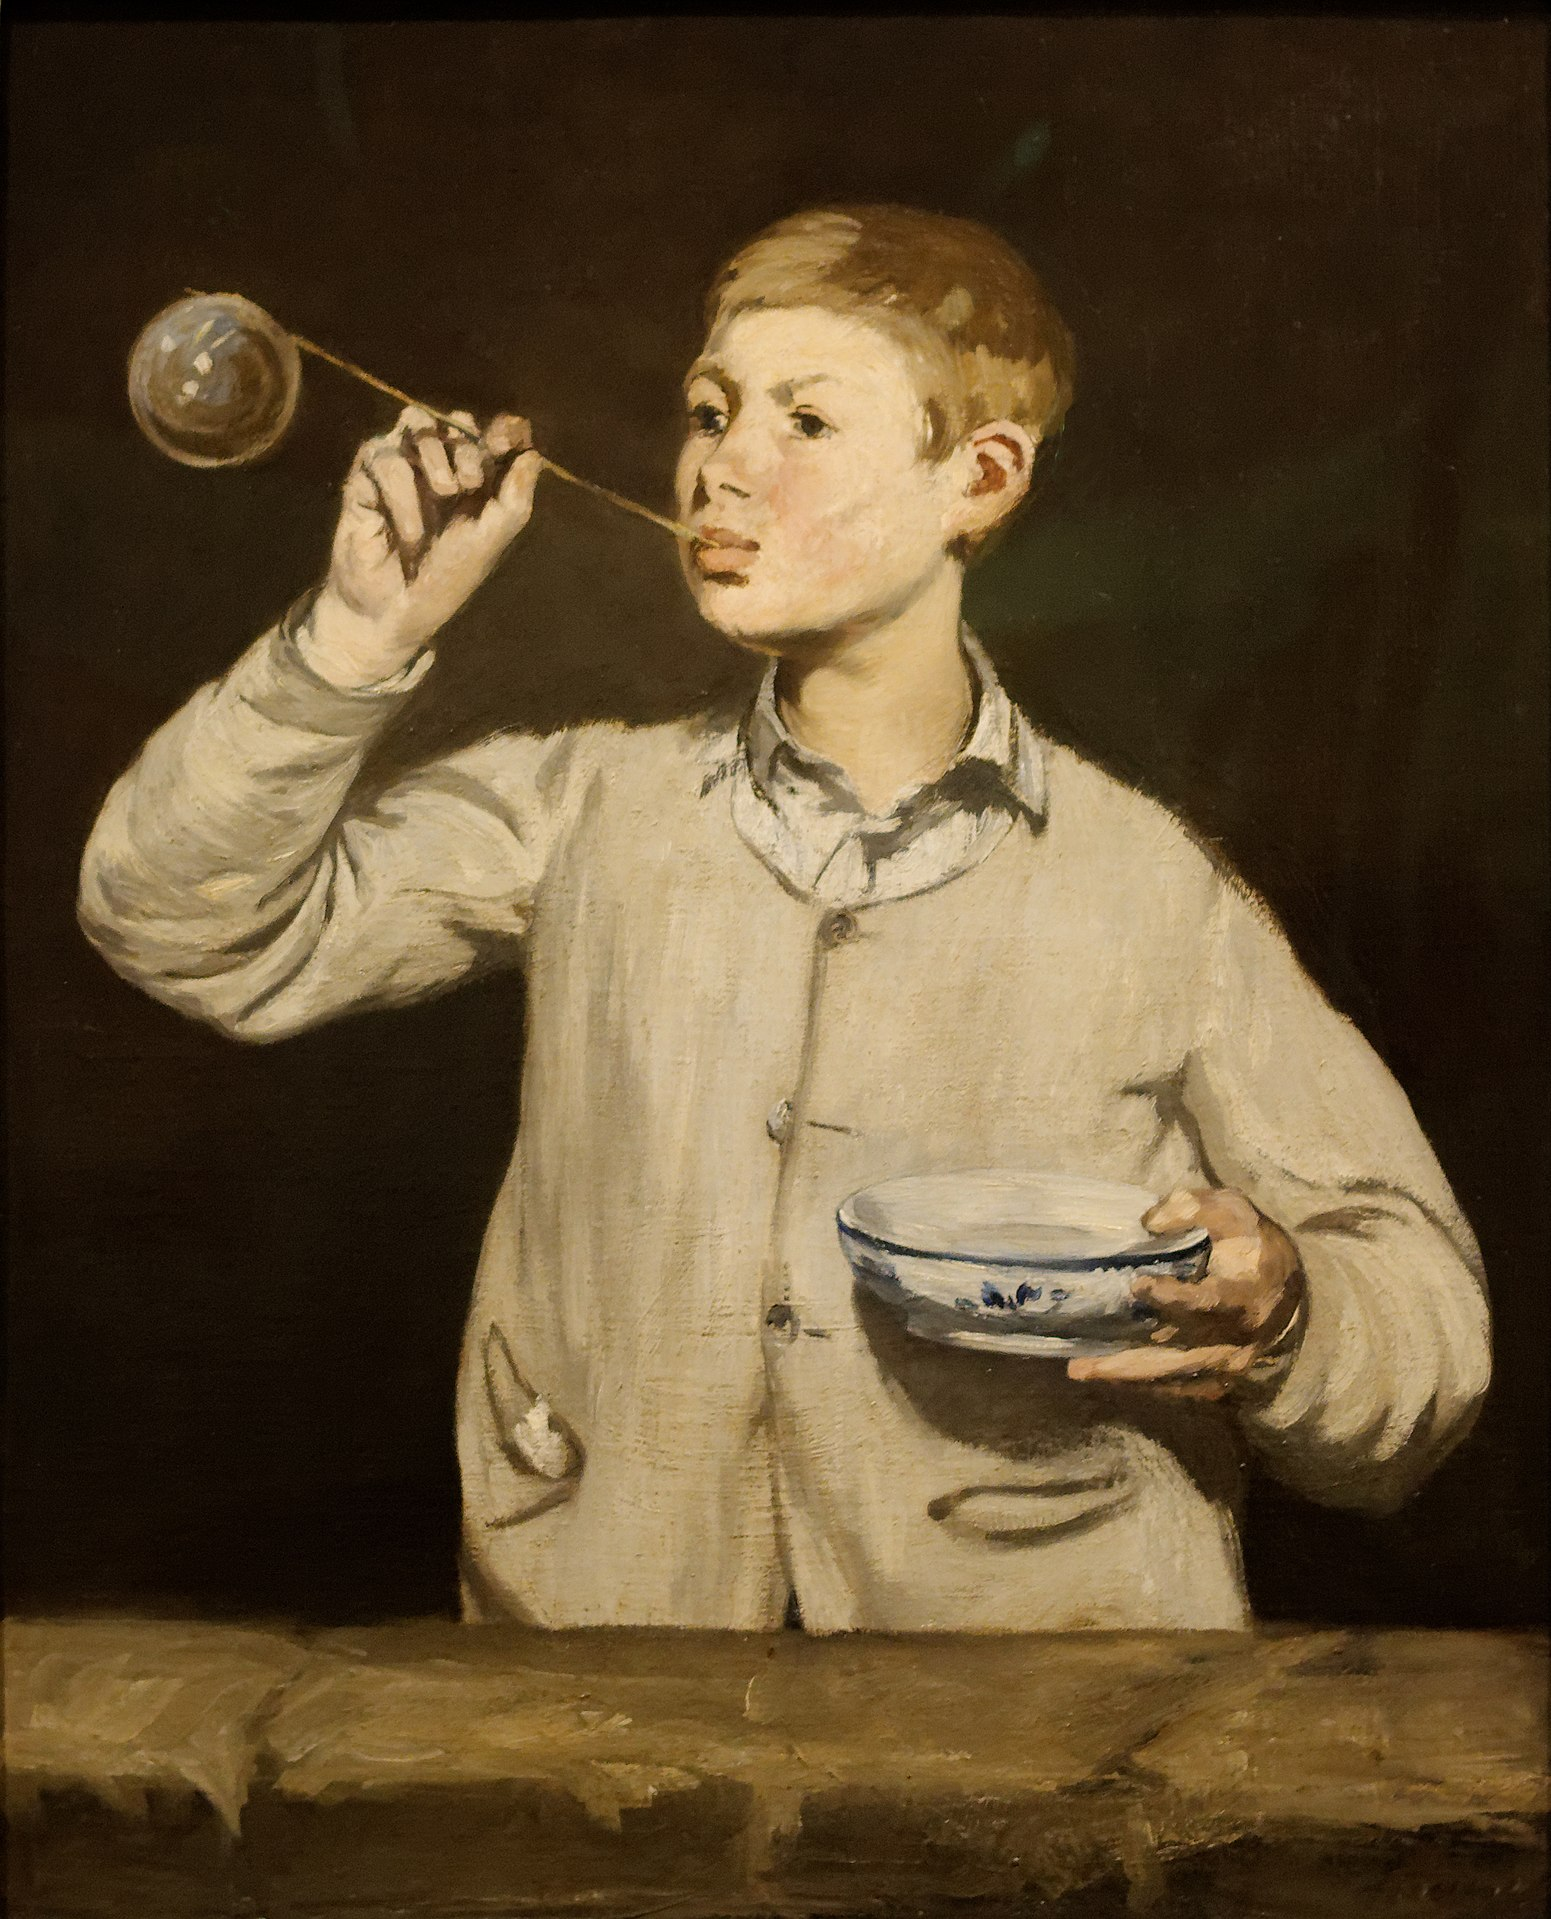 1551px-Boy_Blowing_Bubbles_Edouard_Manet